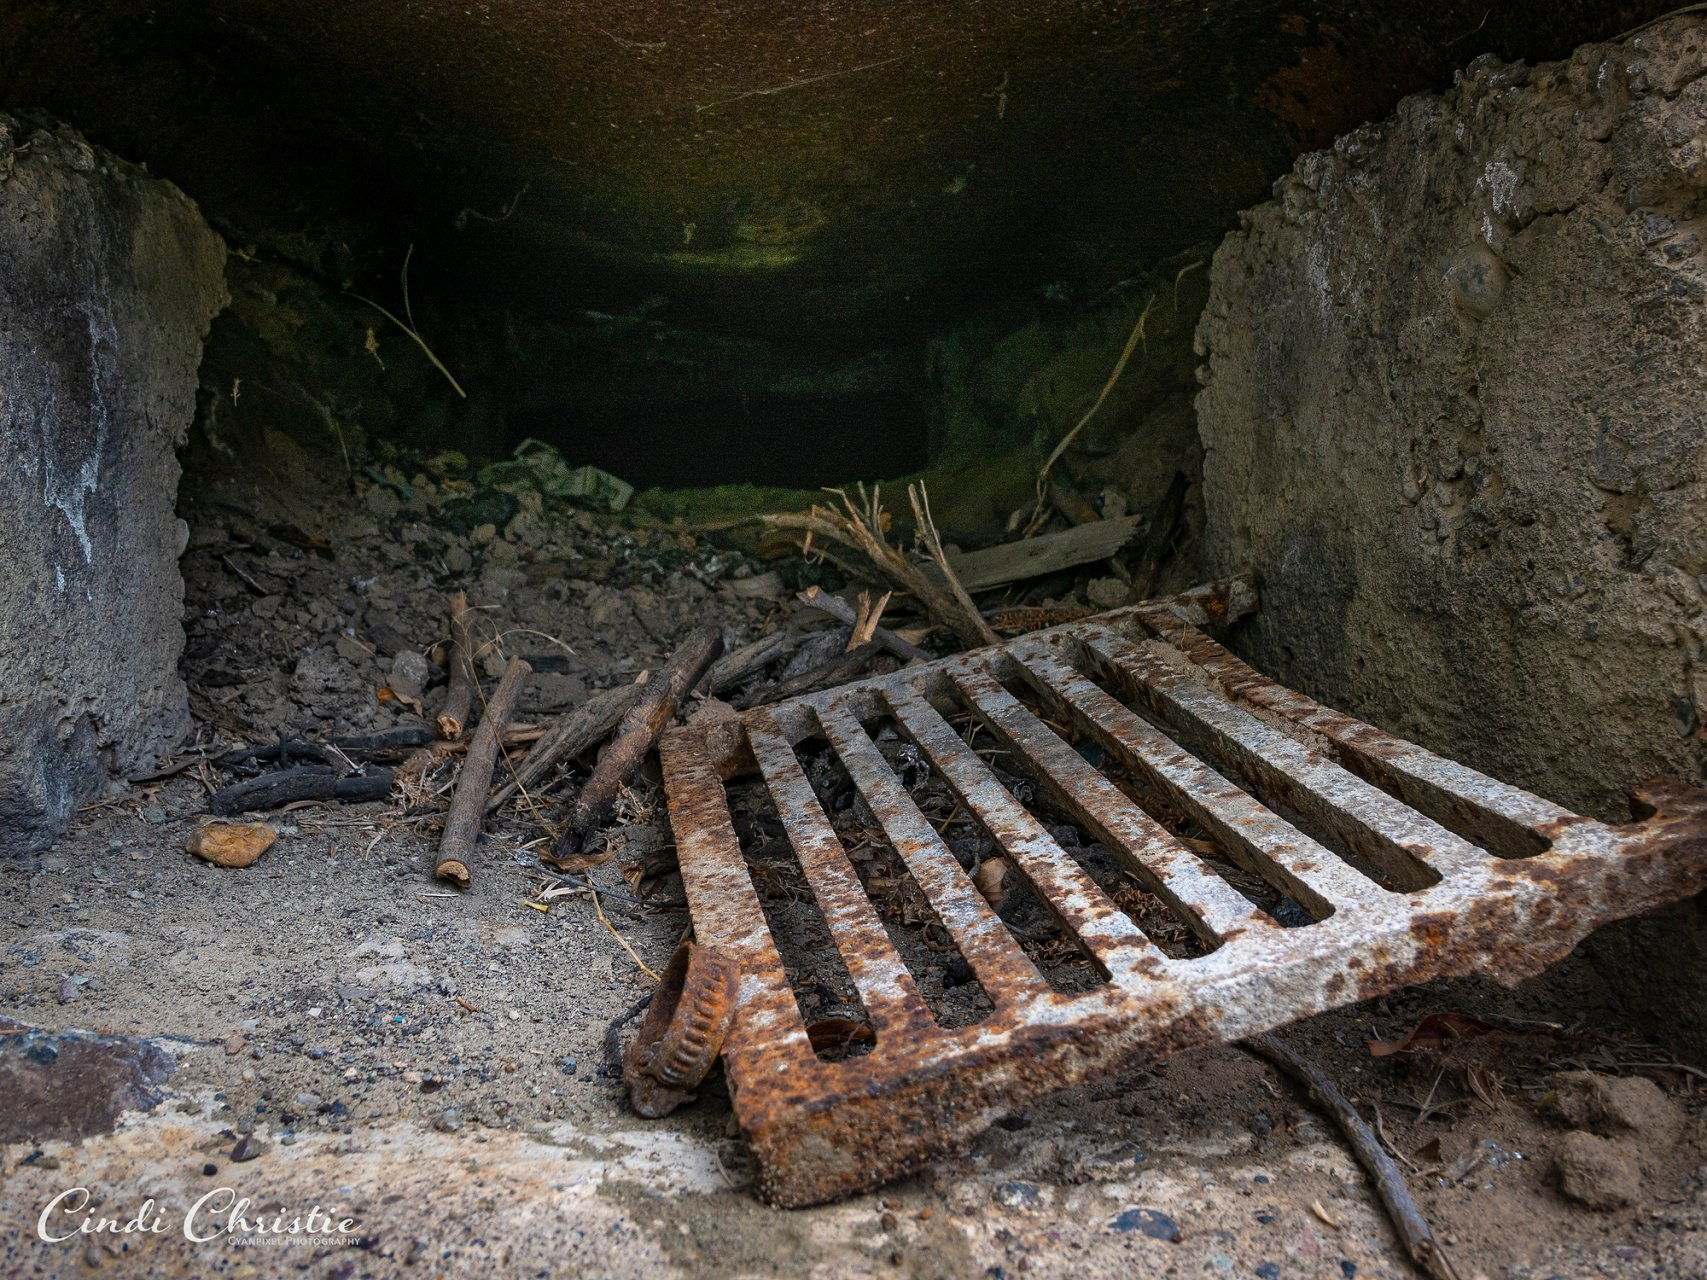 A well-used grate rests in an alcove in the wall.